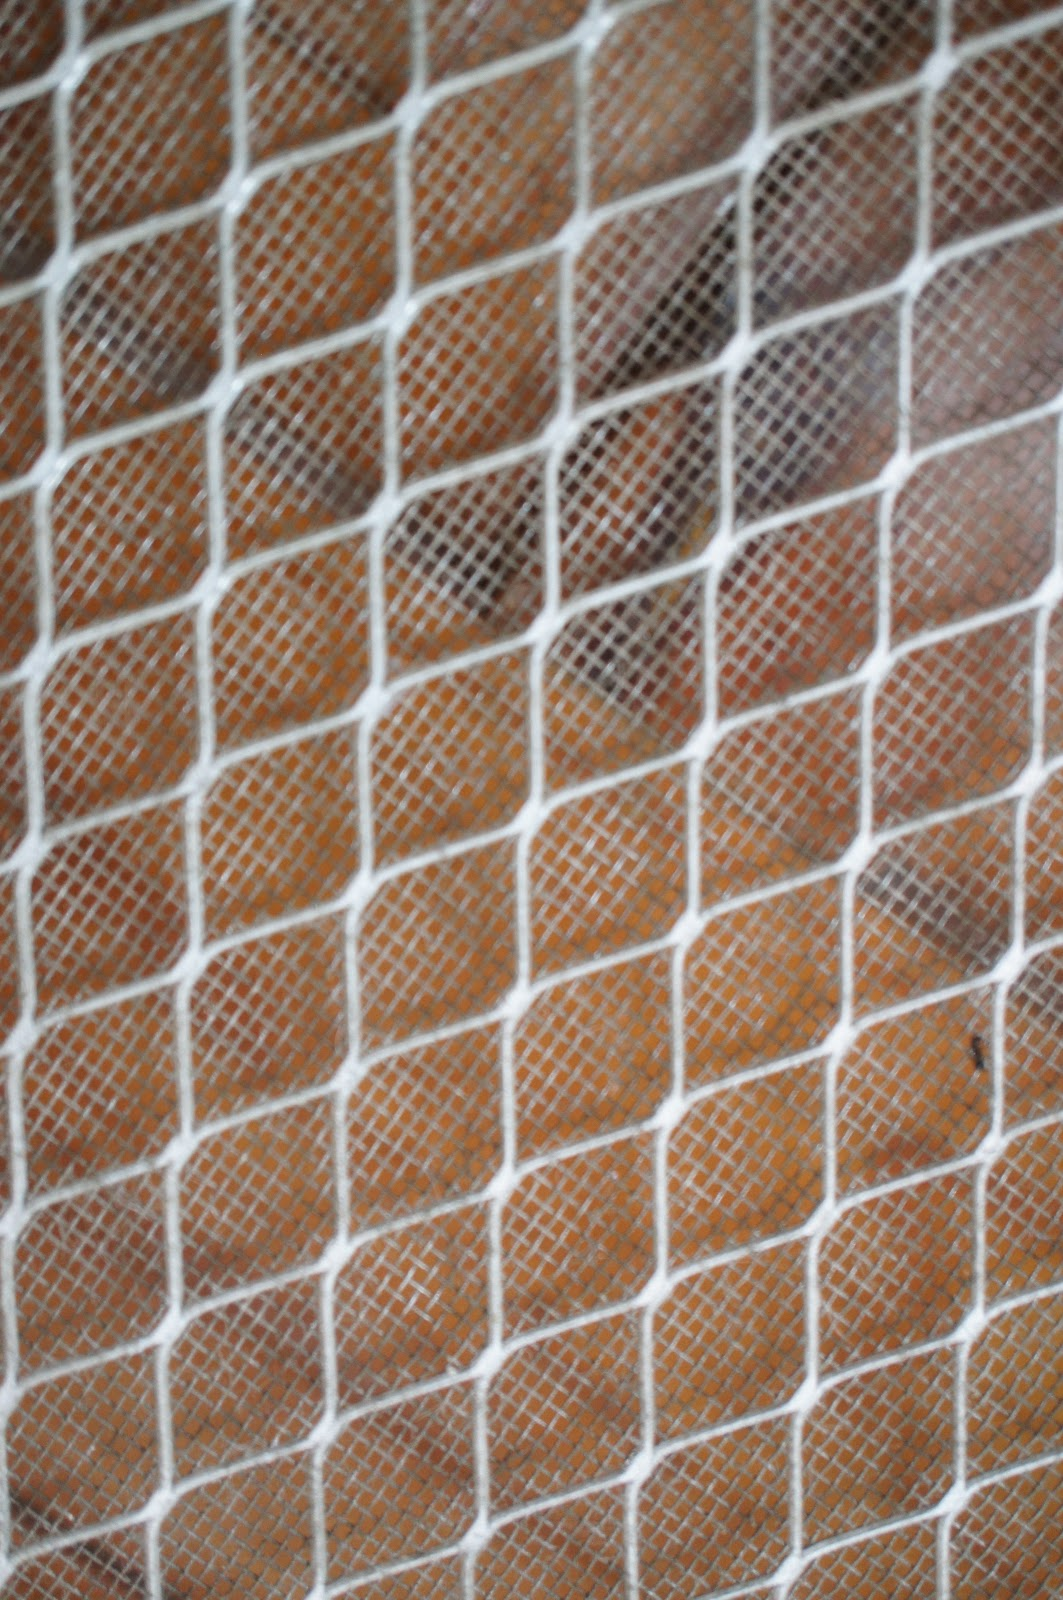 Wire mesh free picture for commercial use, mesh, wires, wire